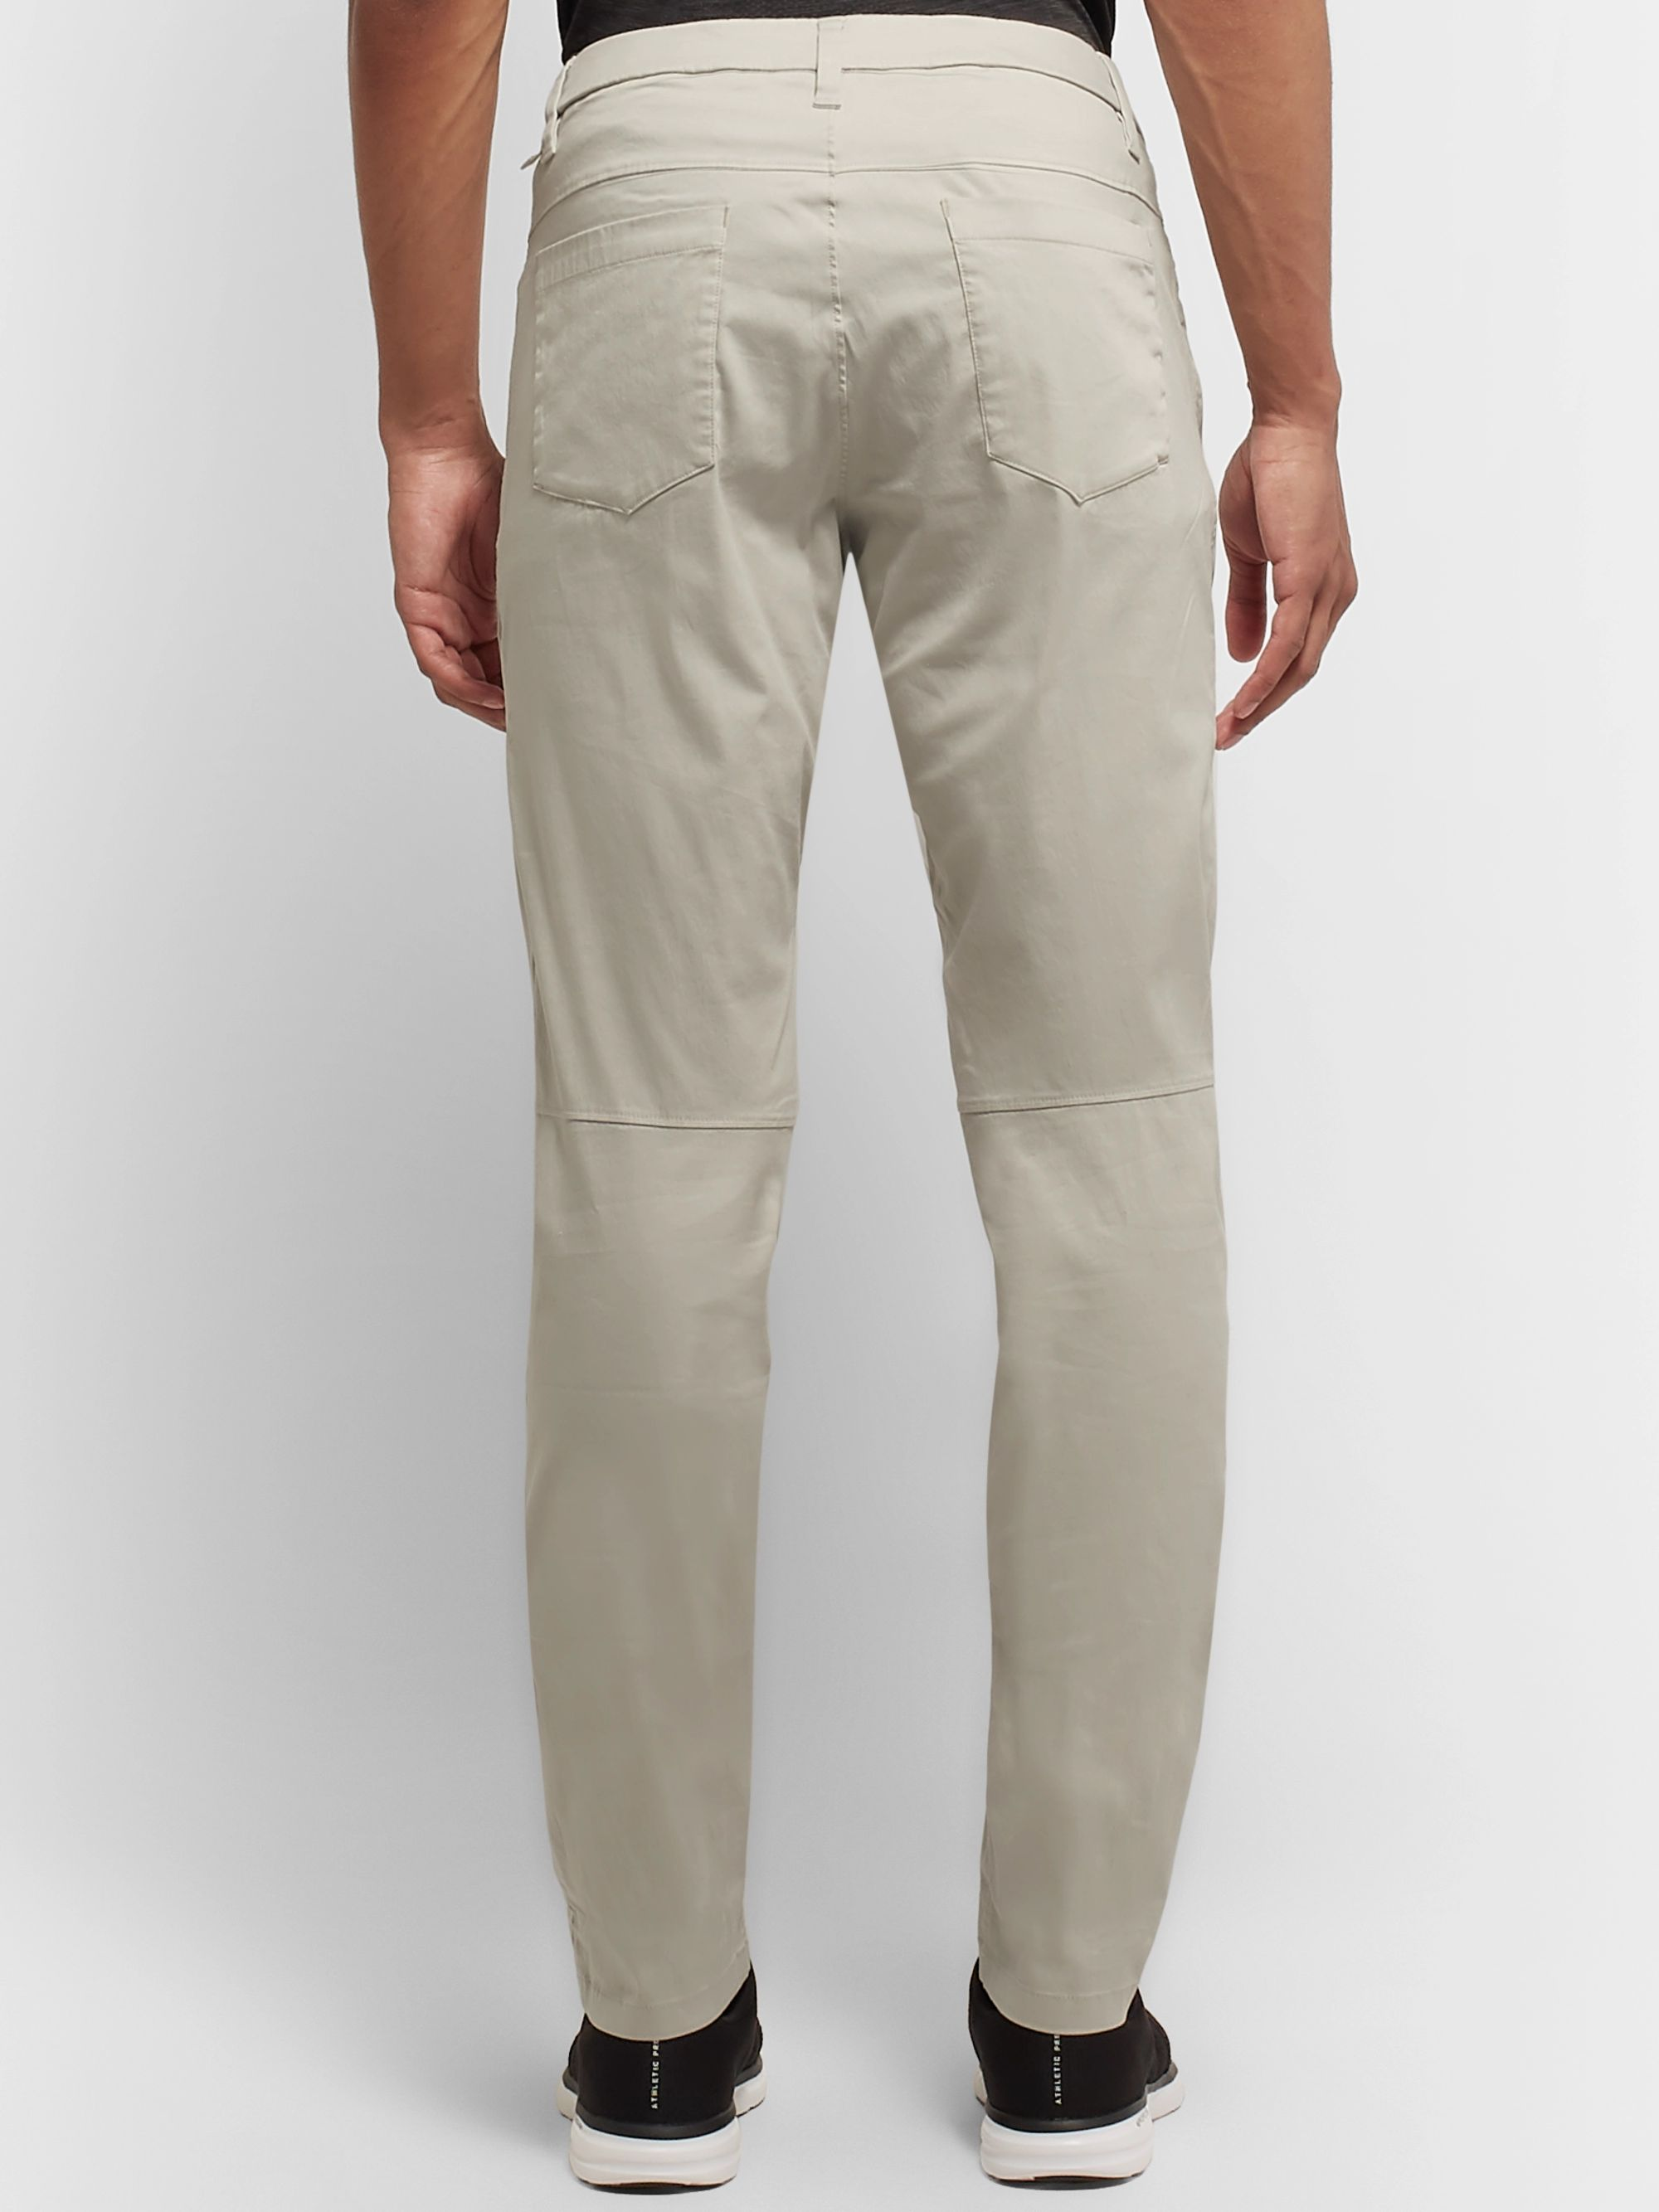 Lululemon ABC Slim-Fit Warpstreme Trousers